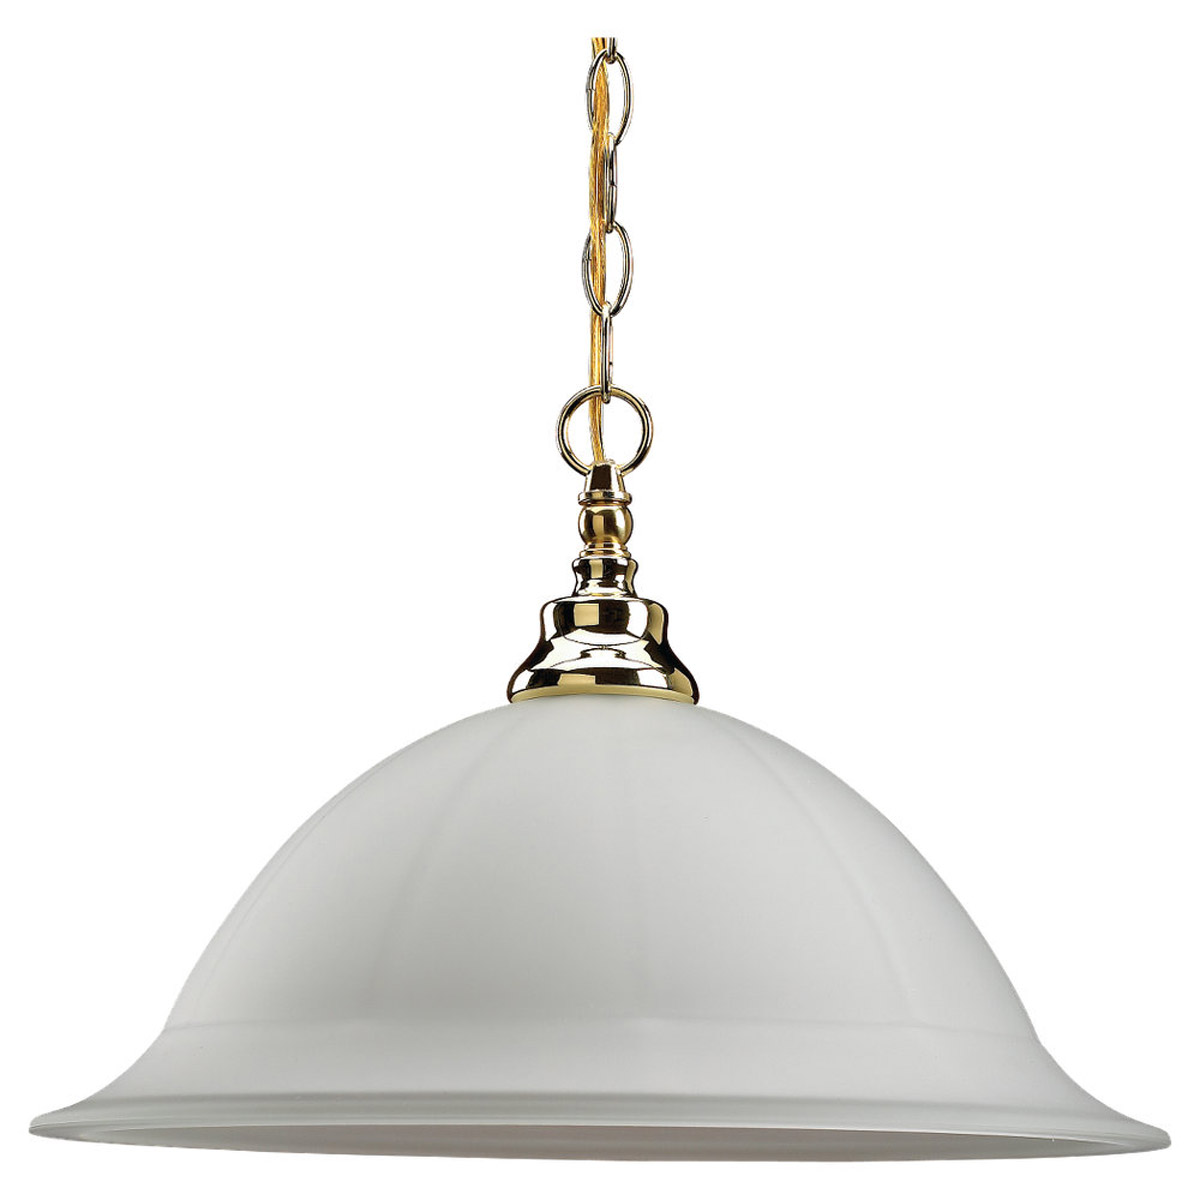 Sea Gull Lighting Canterbury 1 Light Pendant in Polished Brass 65050-02